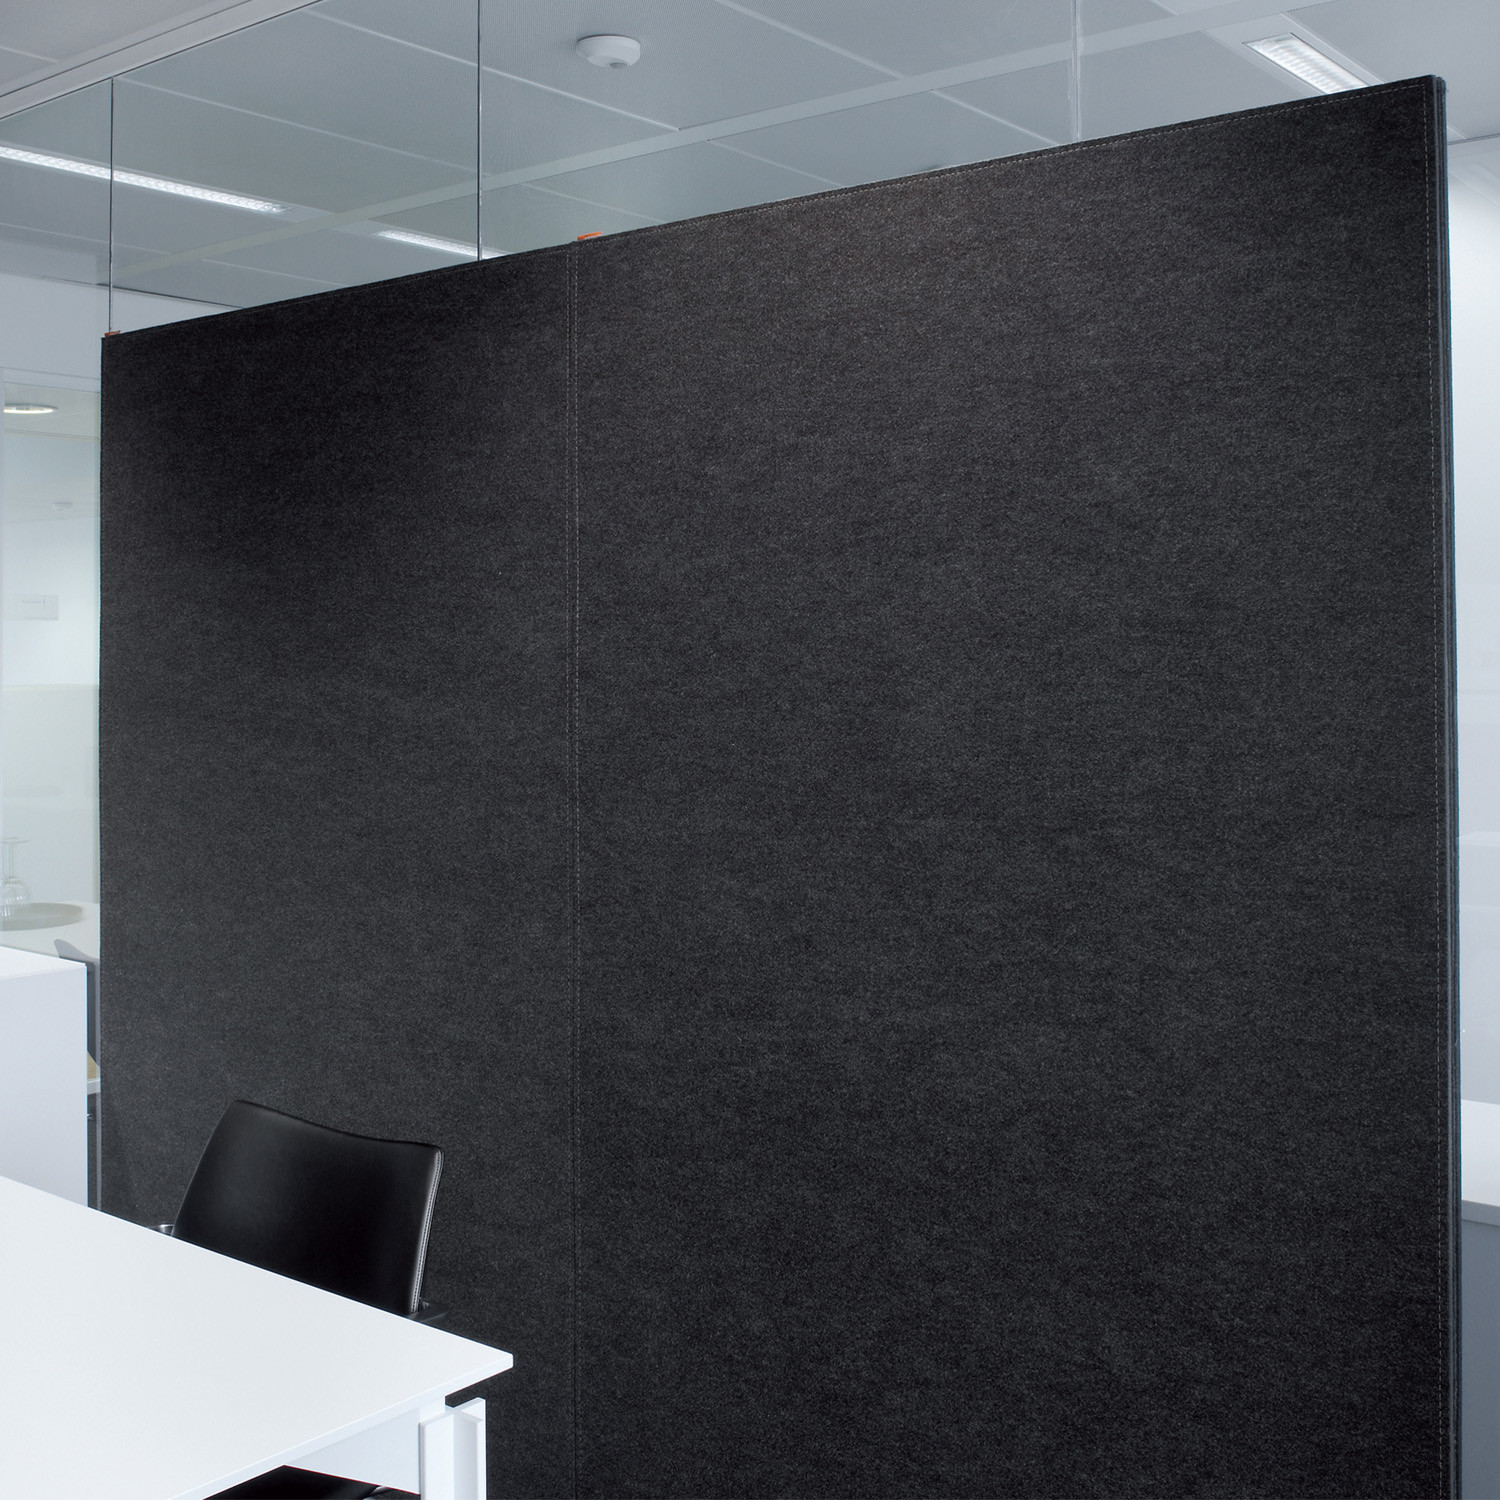 BuzziBack Acoustic Screens by BuzziSpace